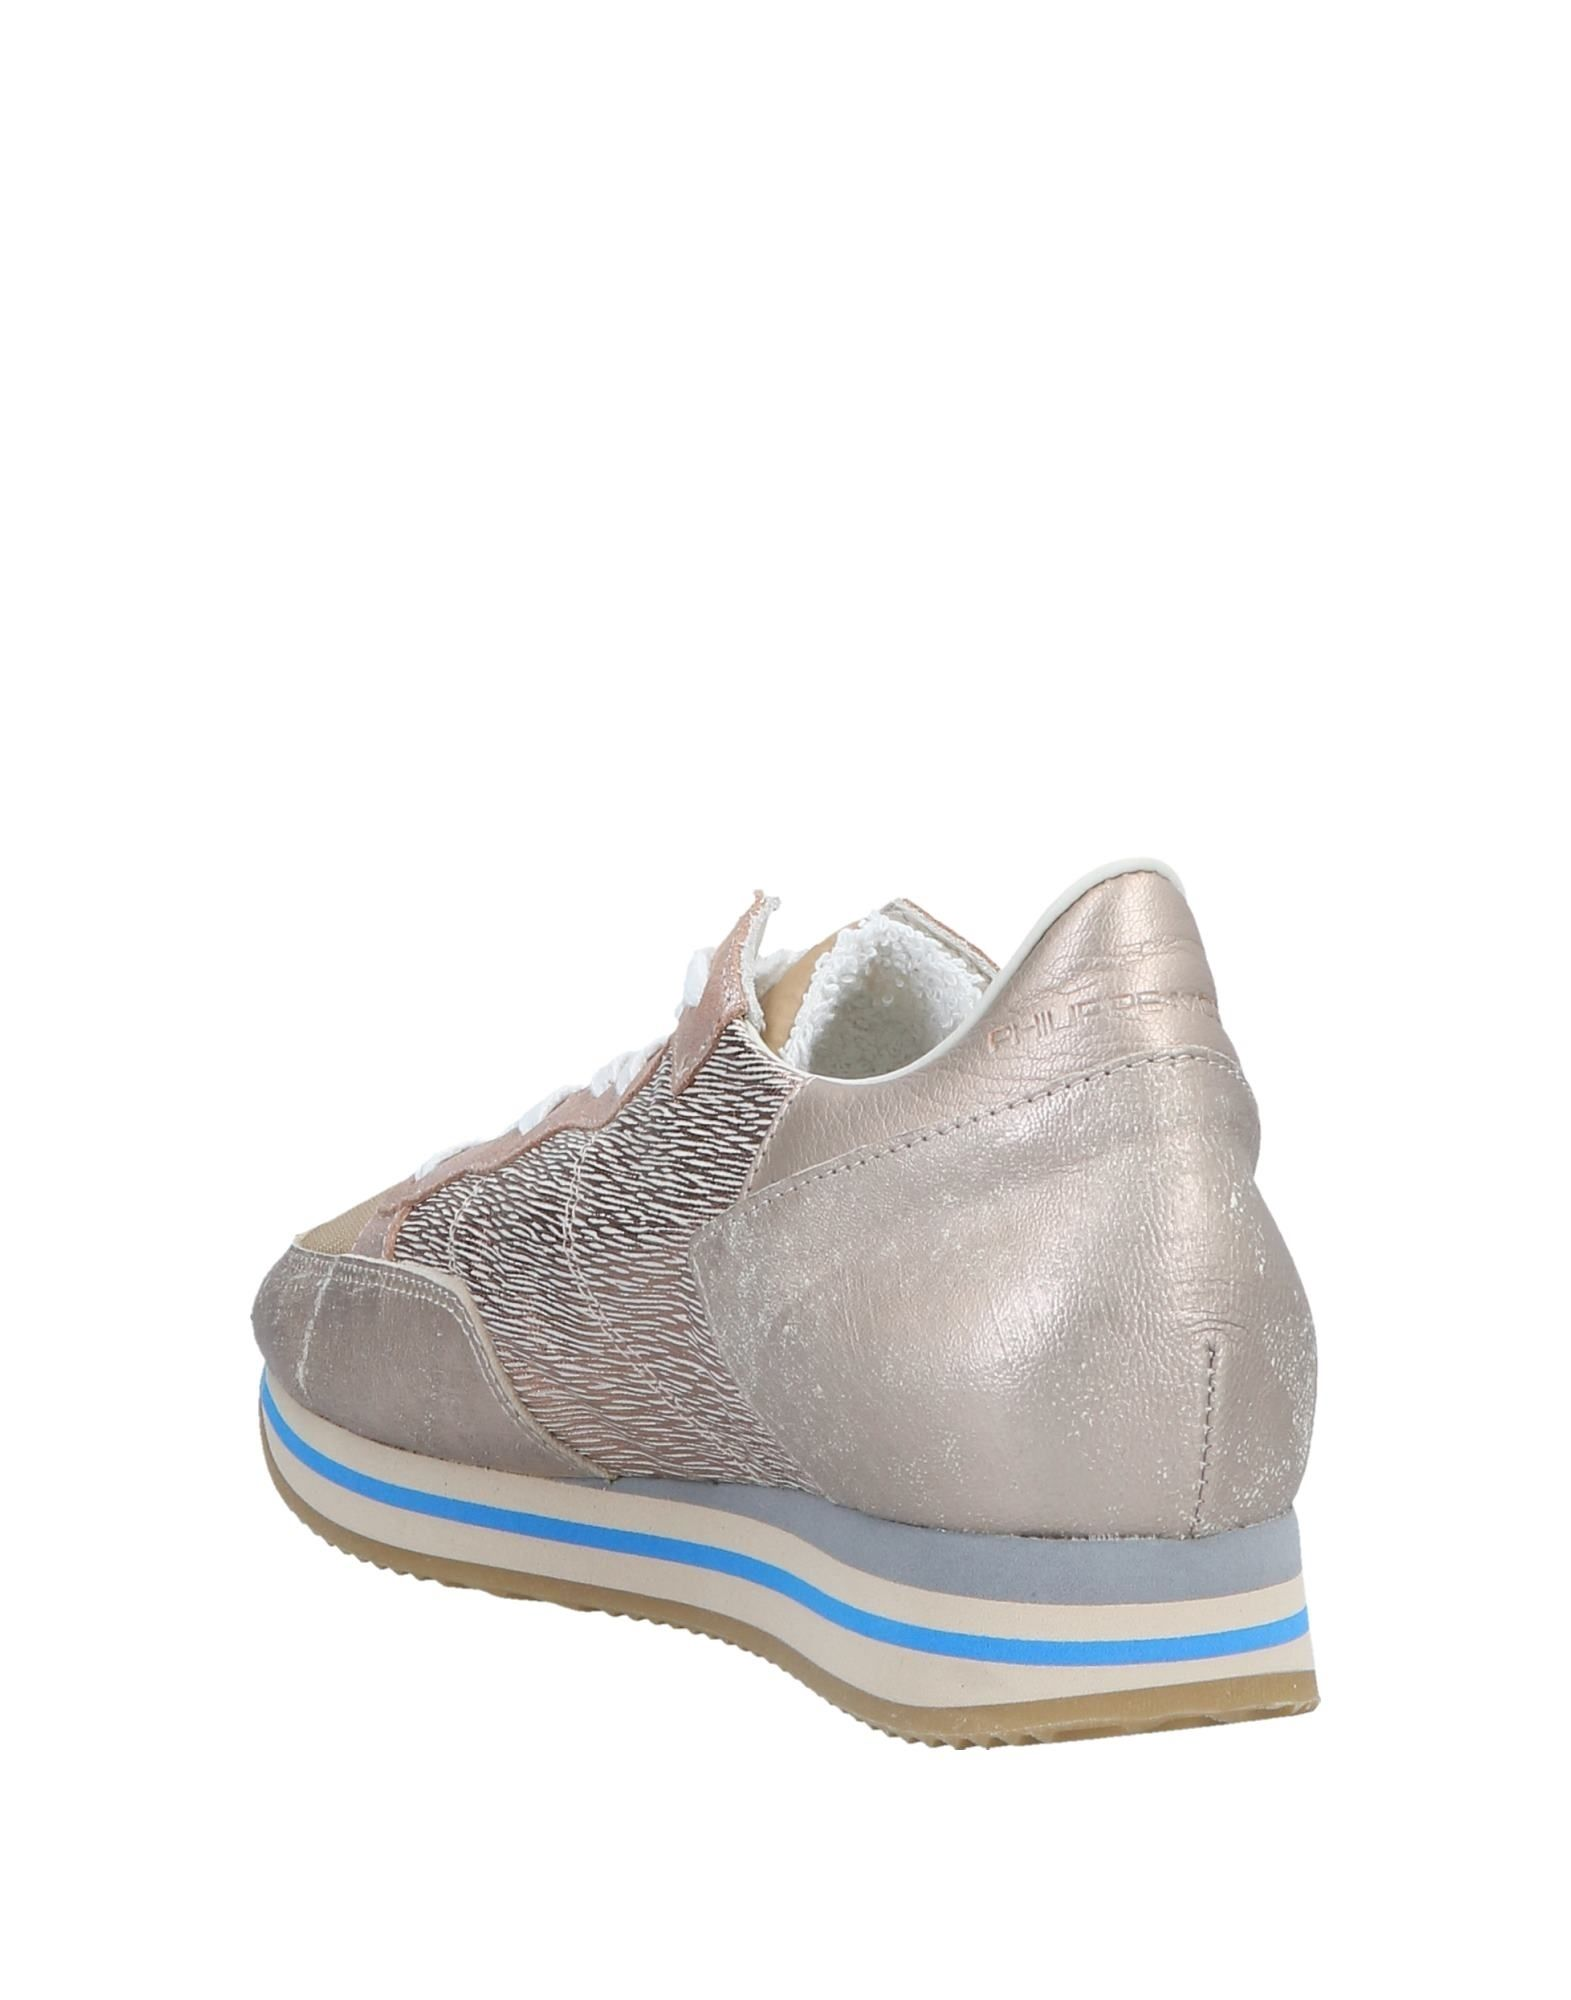 Stilvolle Sneakers billige Schuhe Philippe Model Sneakers Stilvolle Damen  11552110CH 48ebc0